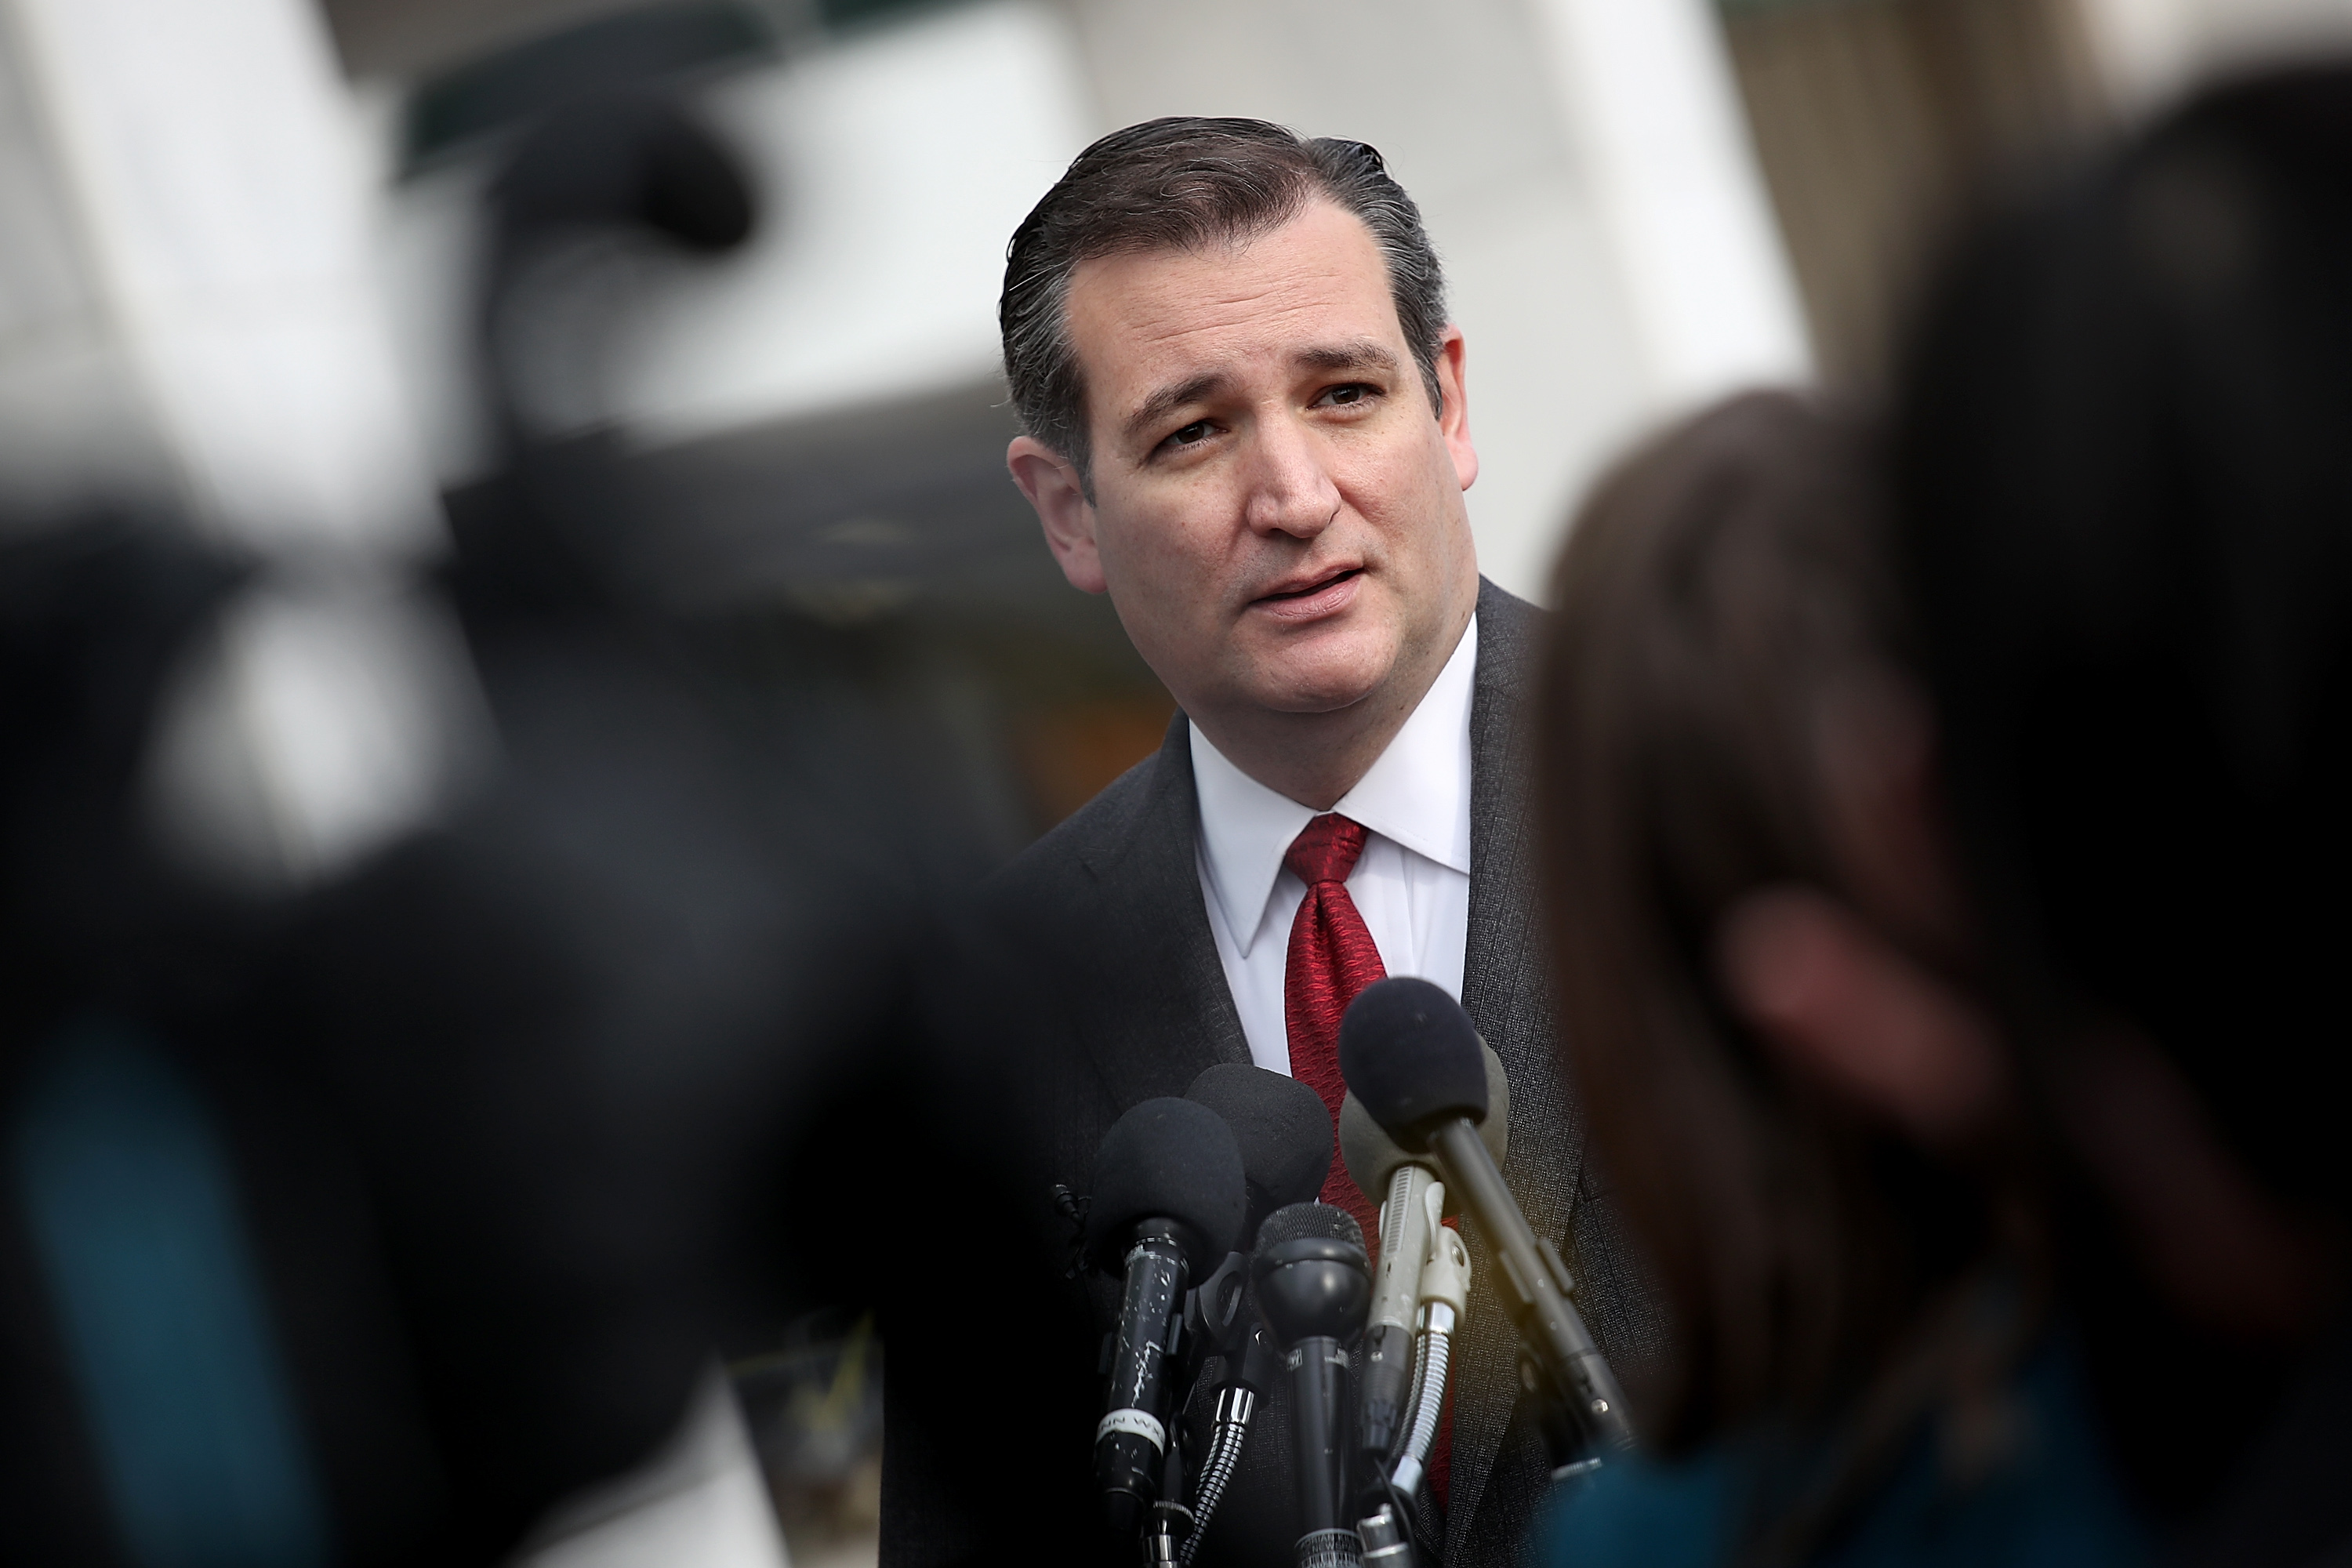 Republican presidential candidate Sen. Ted Cruz (R-TX) addresses the bombings in Brussels during remarks in Washington, D.C., on March 22, 2016.